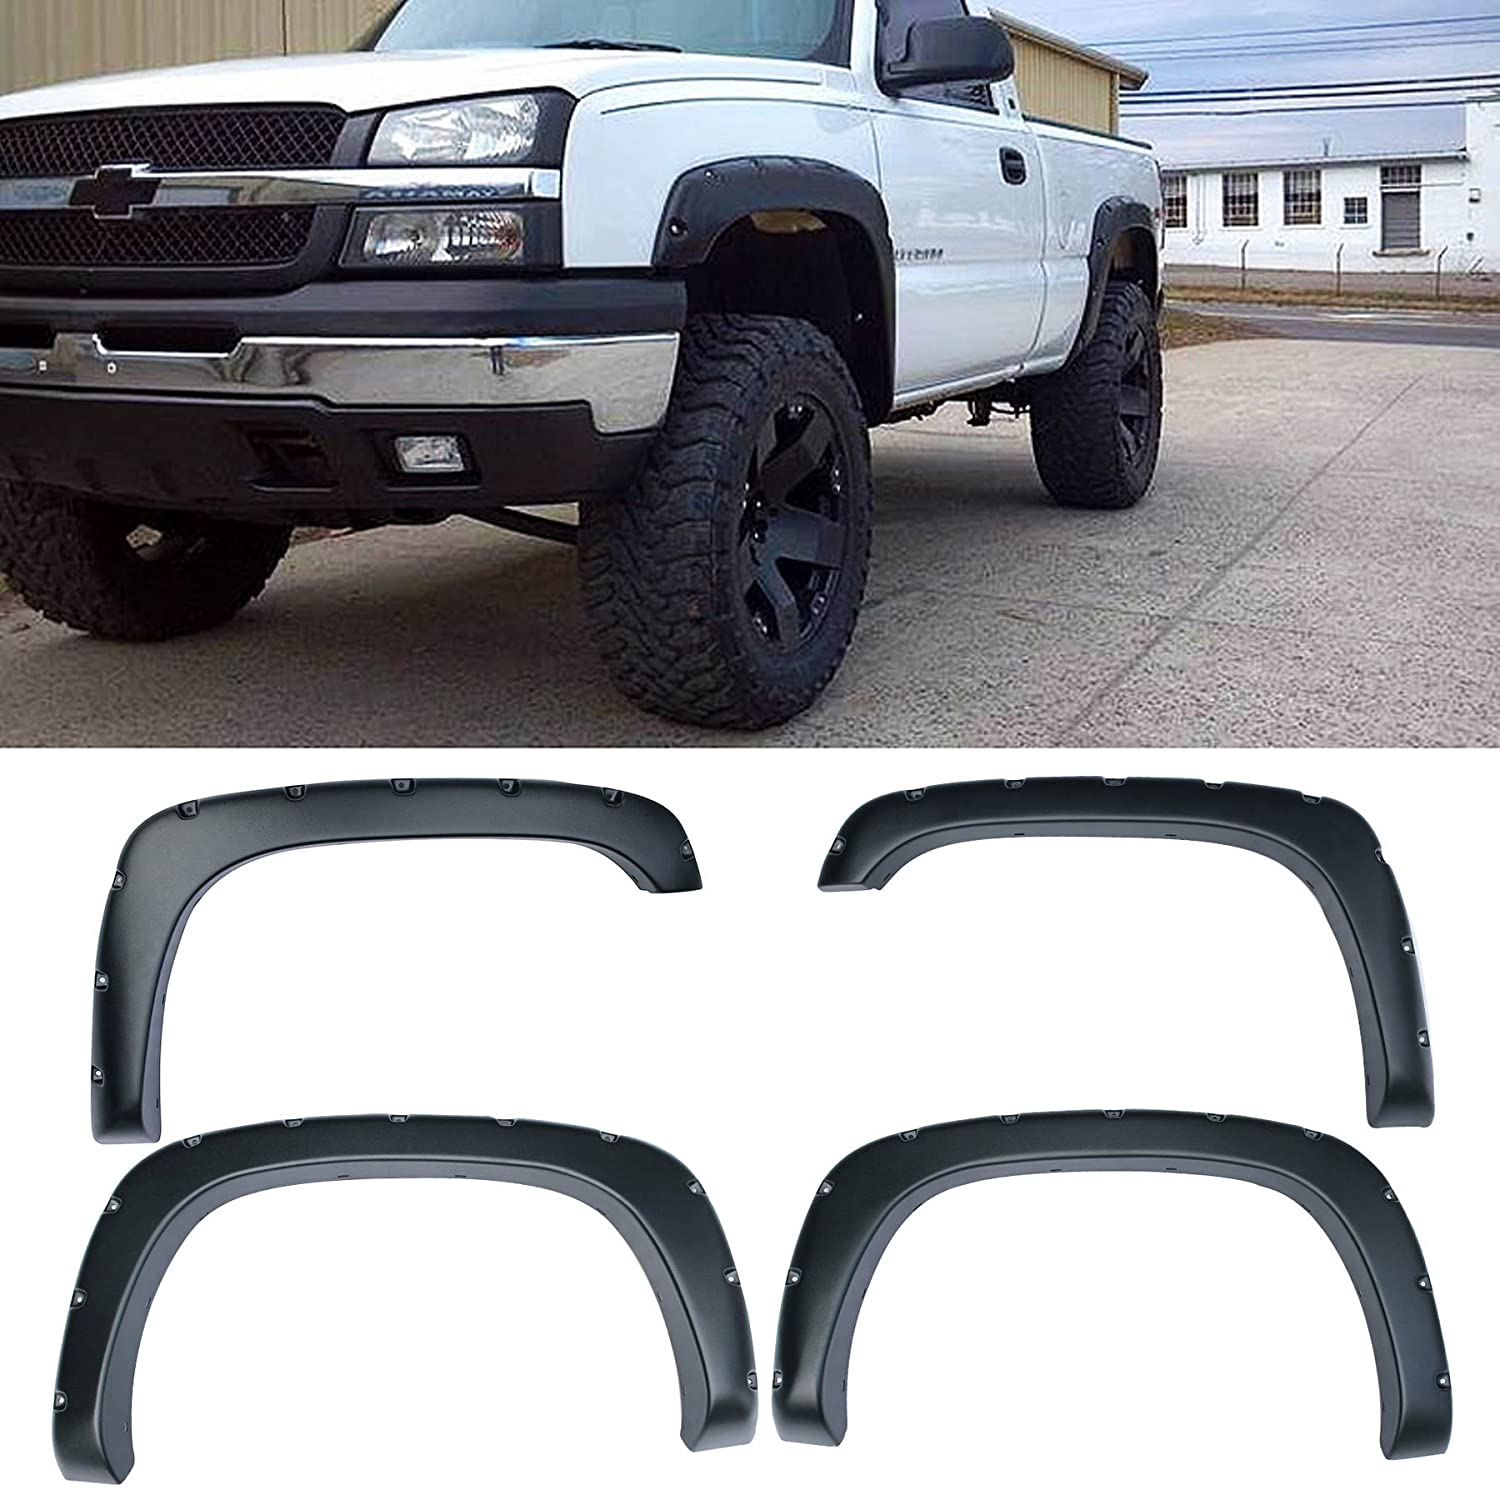 4pcs Front and Rear Textured Black Aftermarket Pocket Riveted Style ABS Plastic Fender Flares for 1999-2006 Chevy Silverado GMC Sierra 1500//1500 HD//2500//2500 HD//3500 2007 Classic Body Fleetside Bed